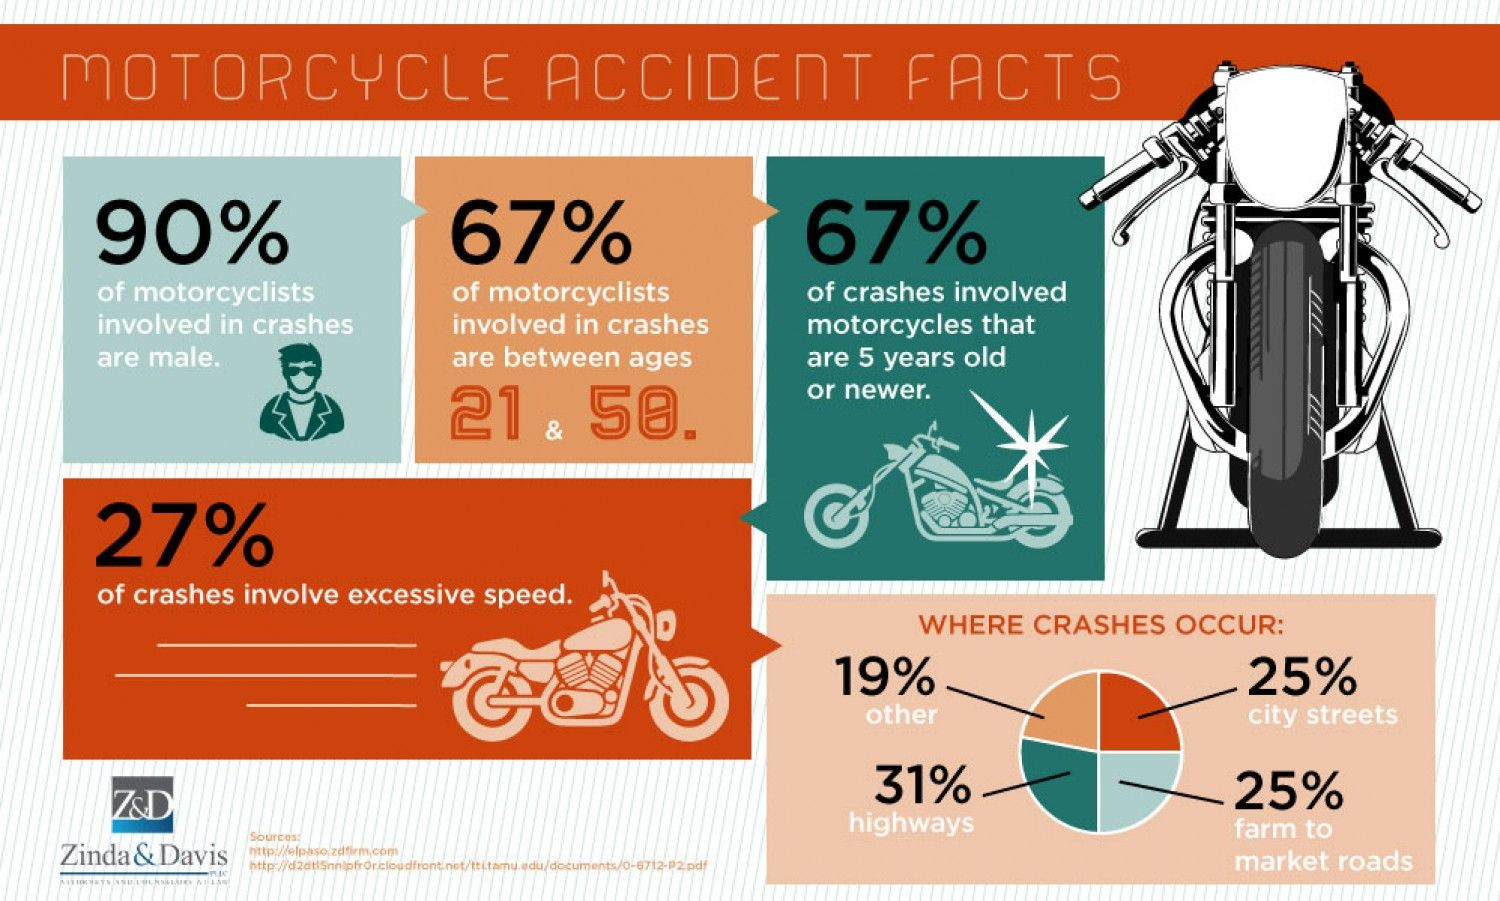 Pin on motorcycle accidents